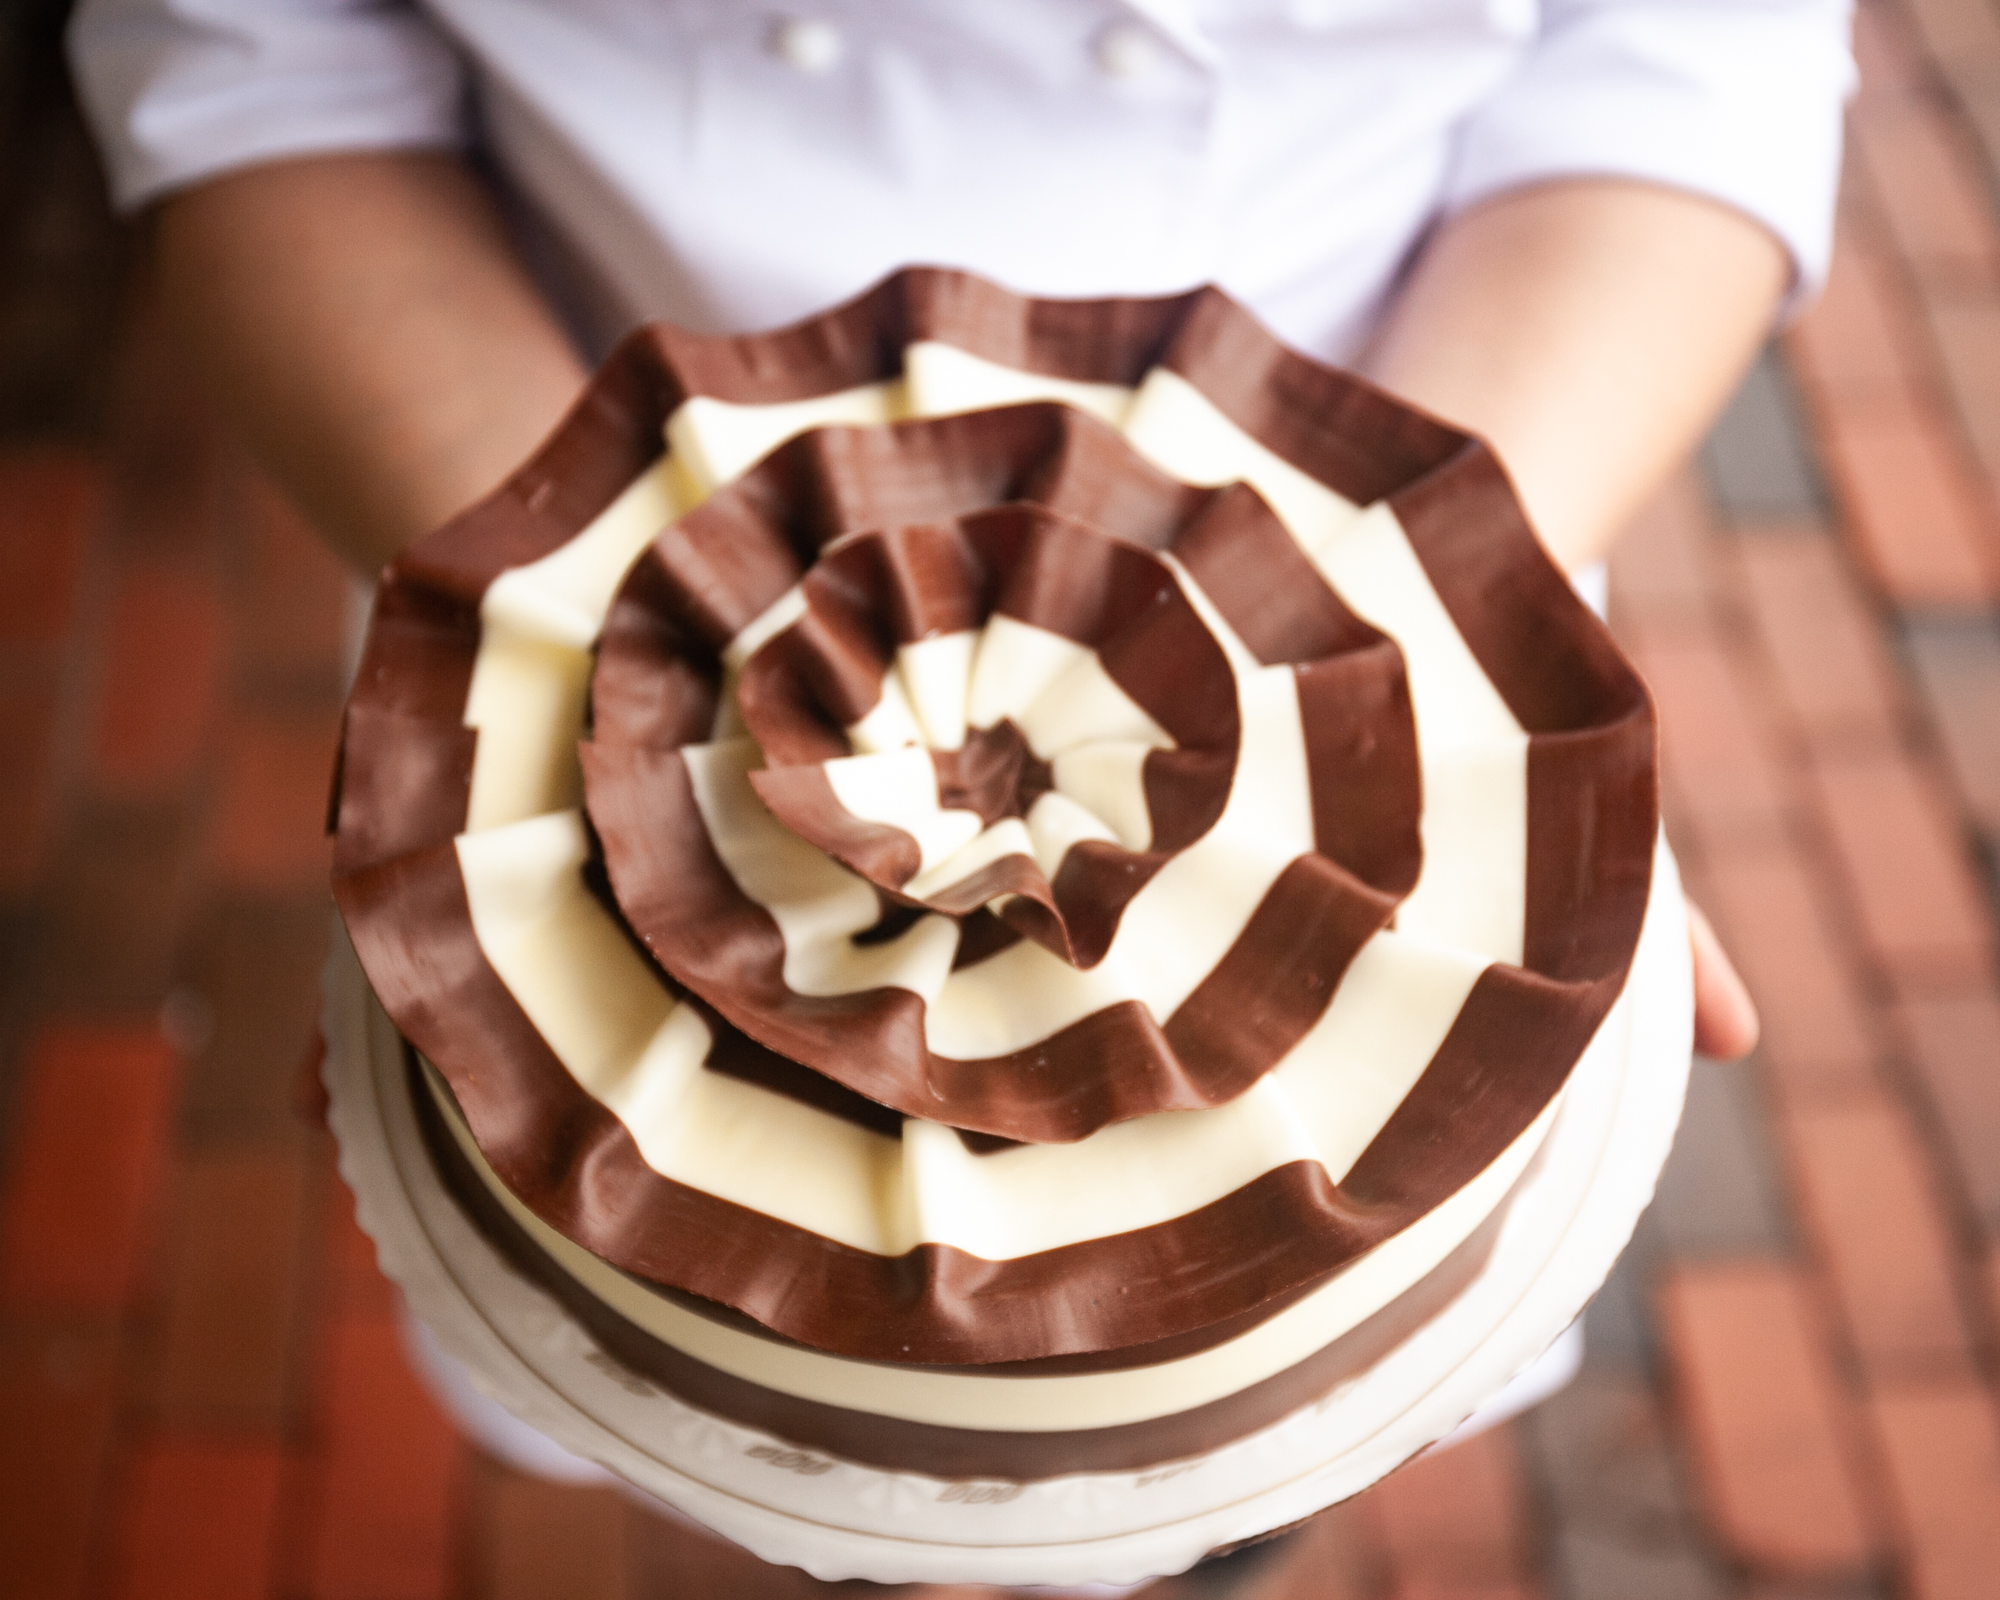 Pastries By Randolphs Chocolate Marble Mousse Cake Is Now Certified Kosher Photo Courtesy Of Randolph